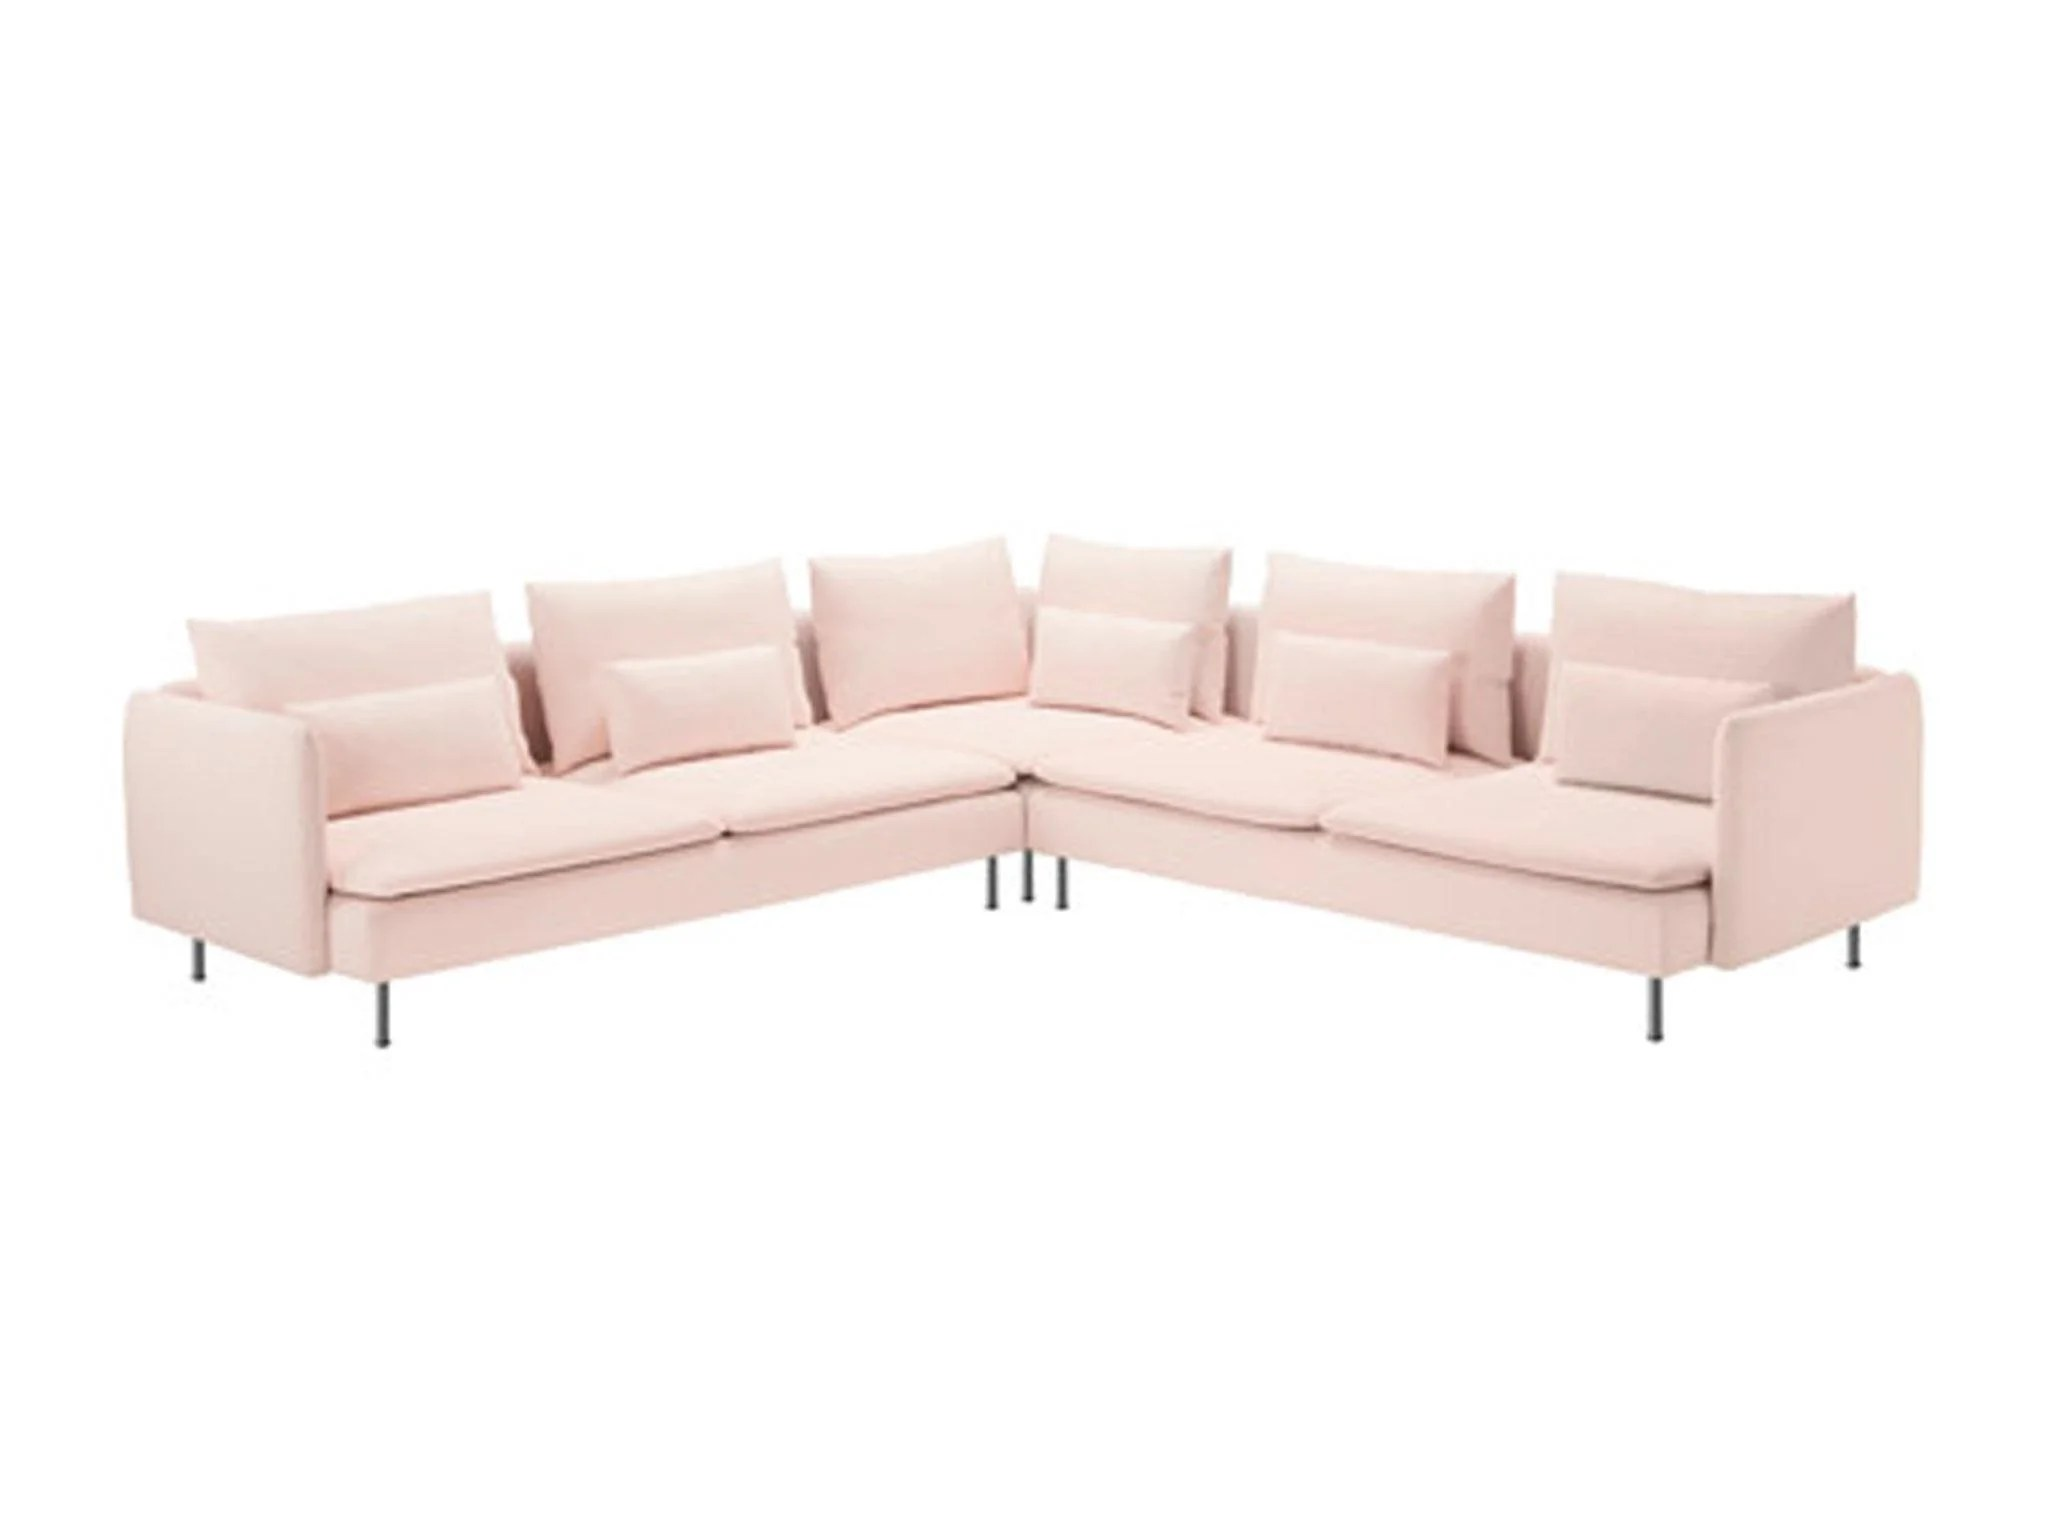 Friheten 3 Zits Slaapbank Handleiding Interesting Another Sofa Solution Thats Made Up In